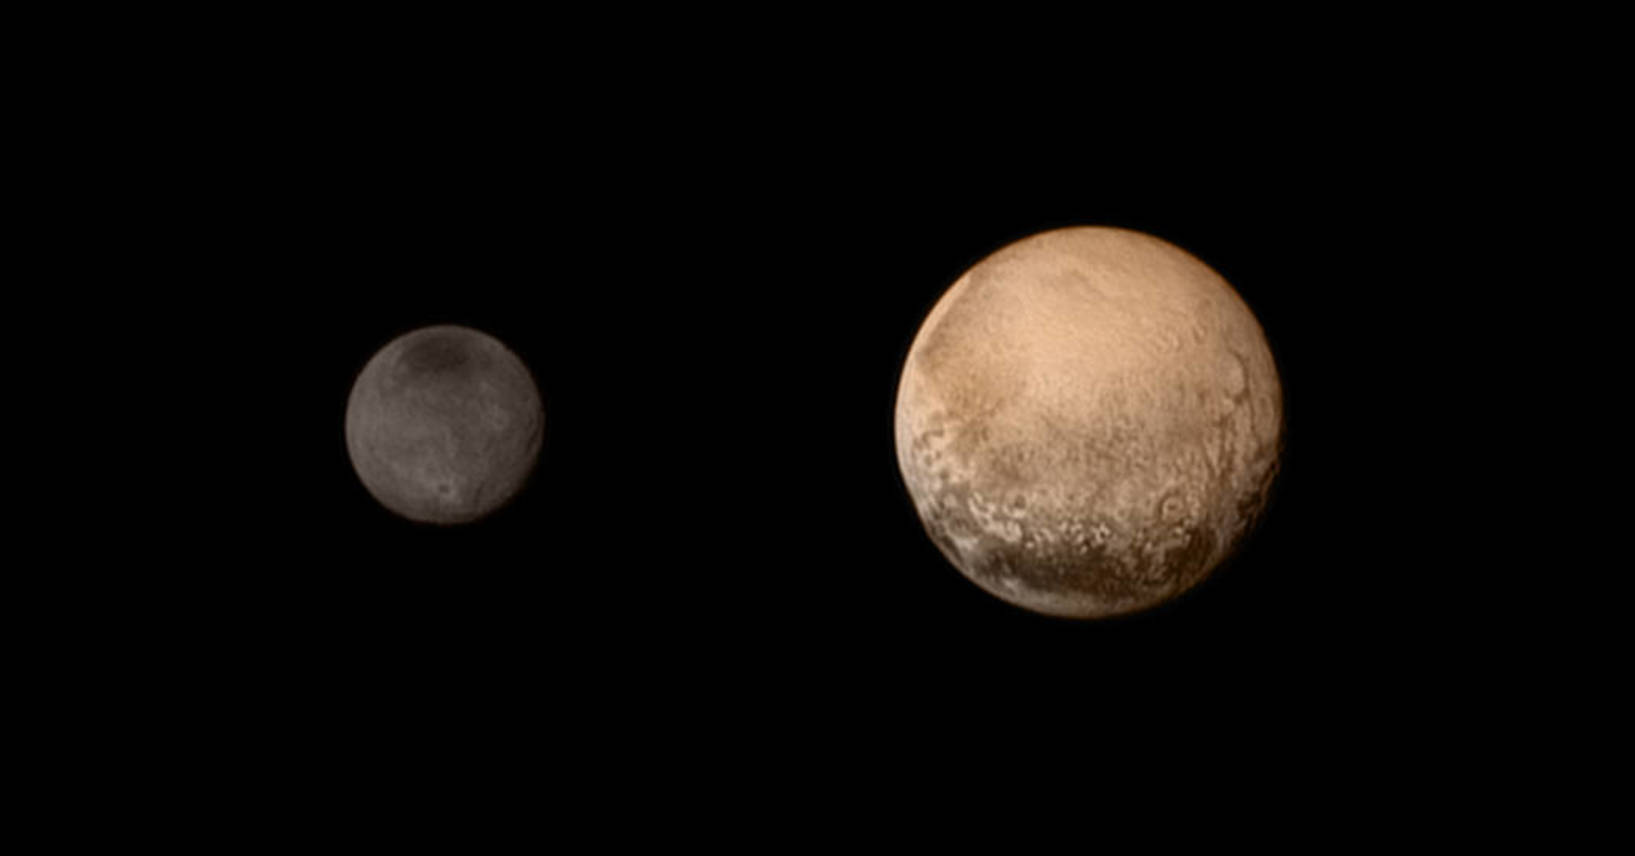 Live blog: New Horizons flyby of Pluto